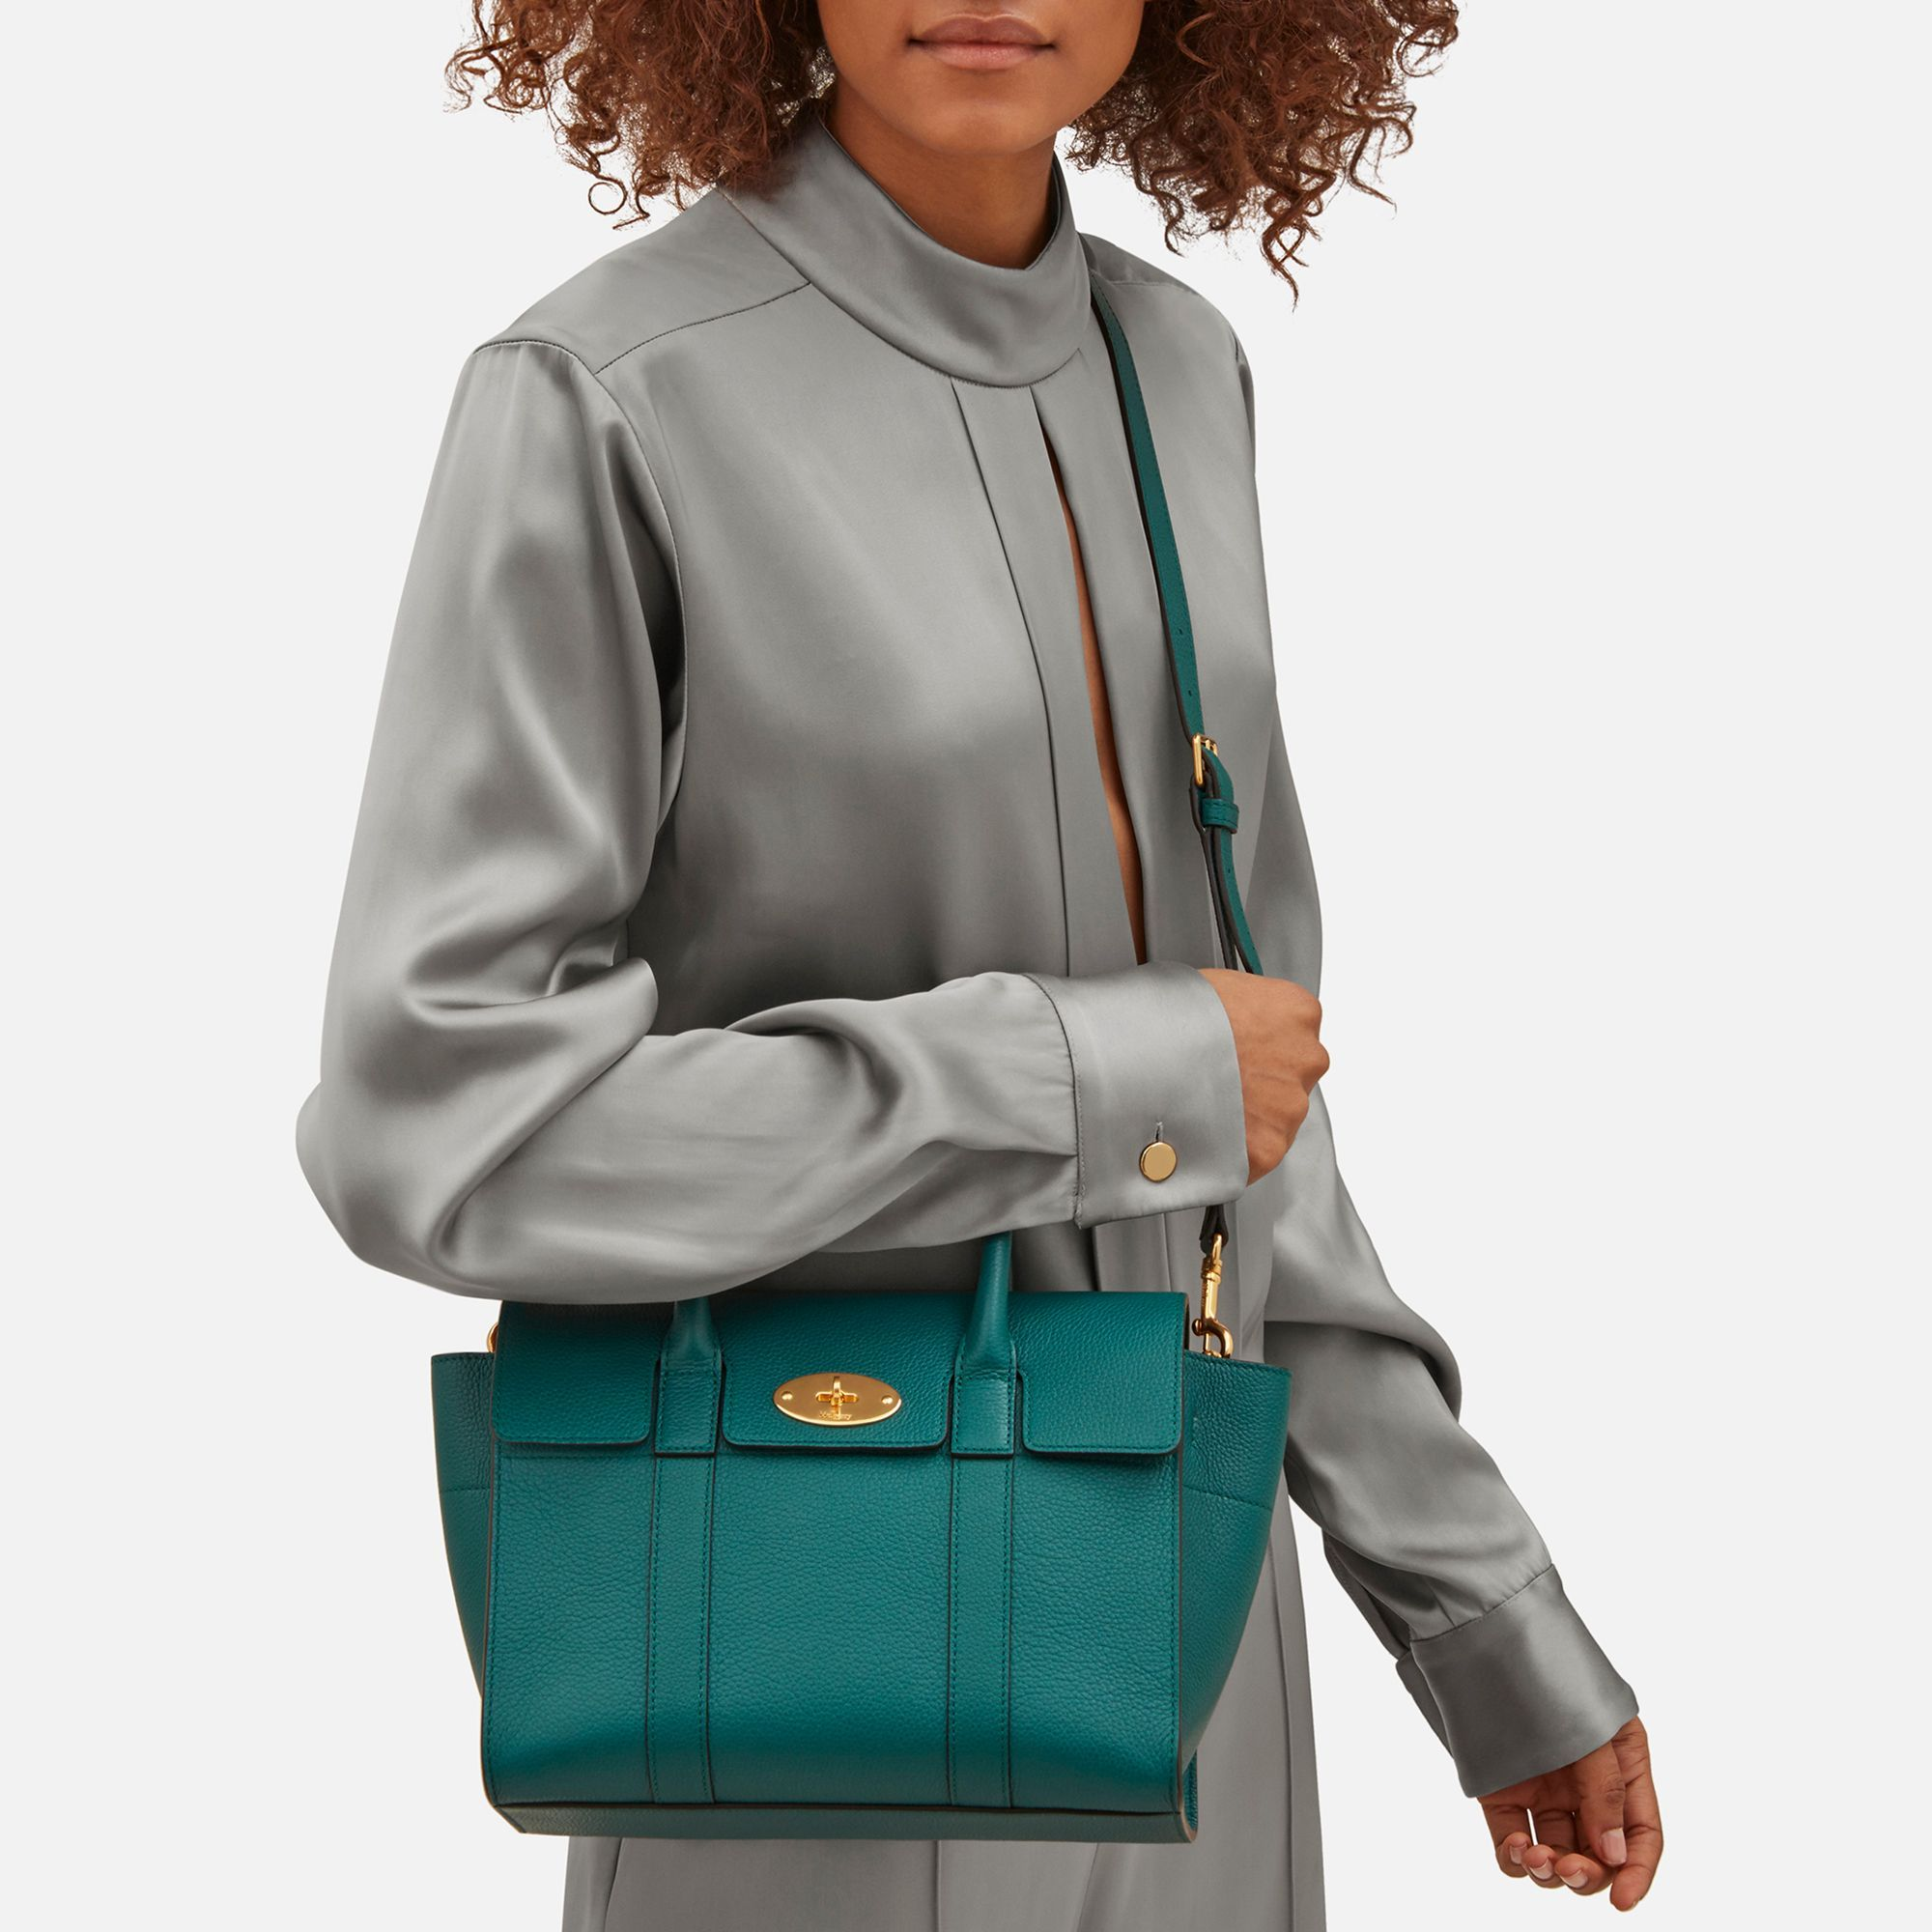 19d74086a5b Shop the Small New Bayswater in Ocean Green Leather at Mulberry.com. The  Bayswater is a Mulberry icon and has been one of our most popular styles  since it ...